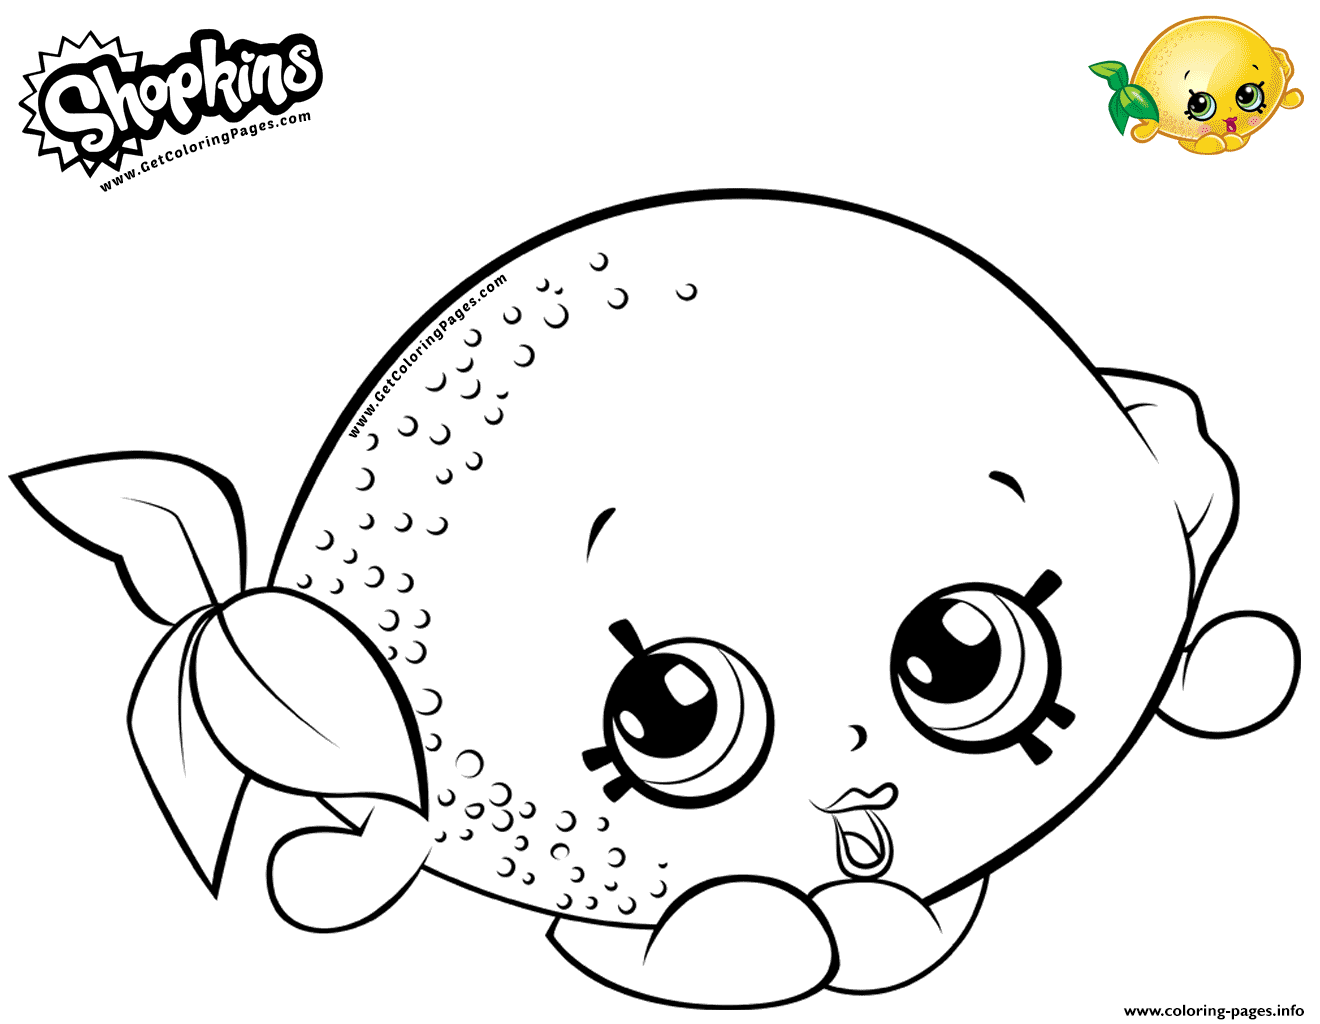 Cartoon Lemon Toy coloring pages